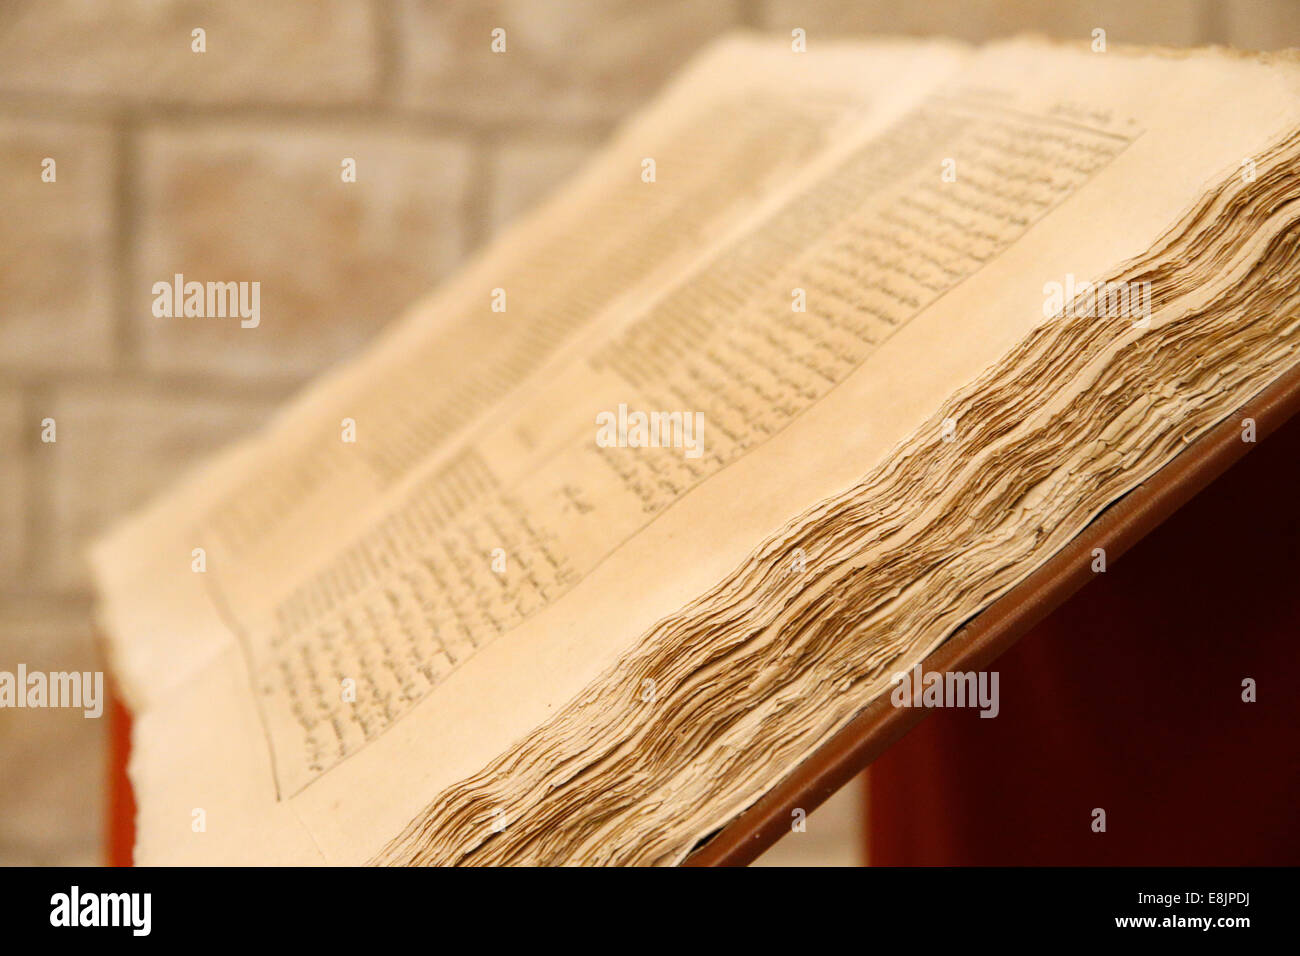 Sisters of Nazareth Convent. Old bible in arabic and latin. - Stock Image